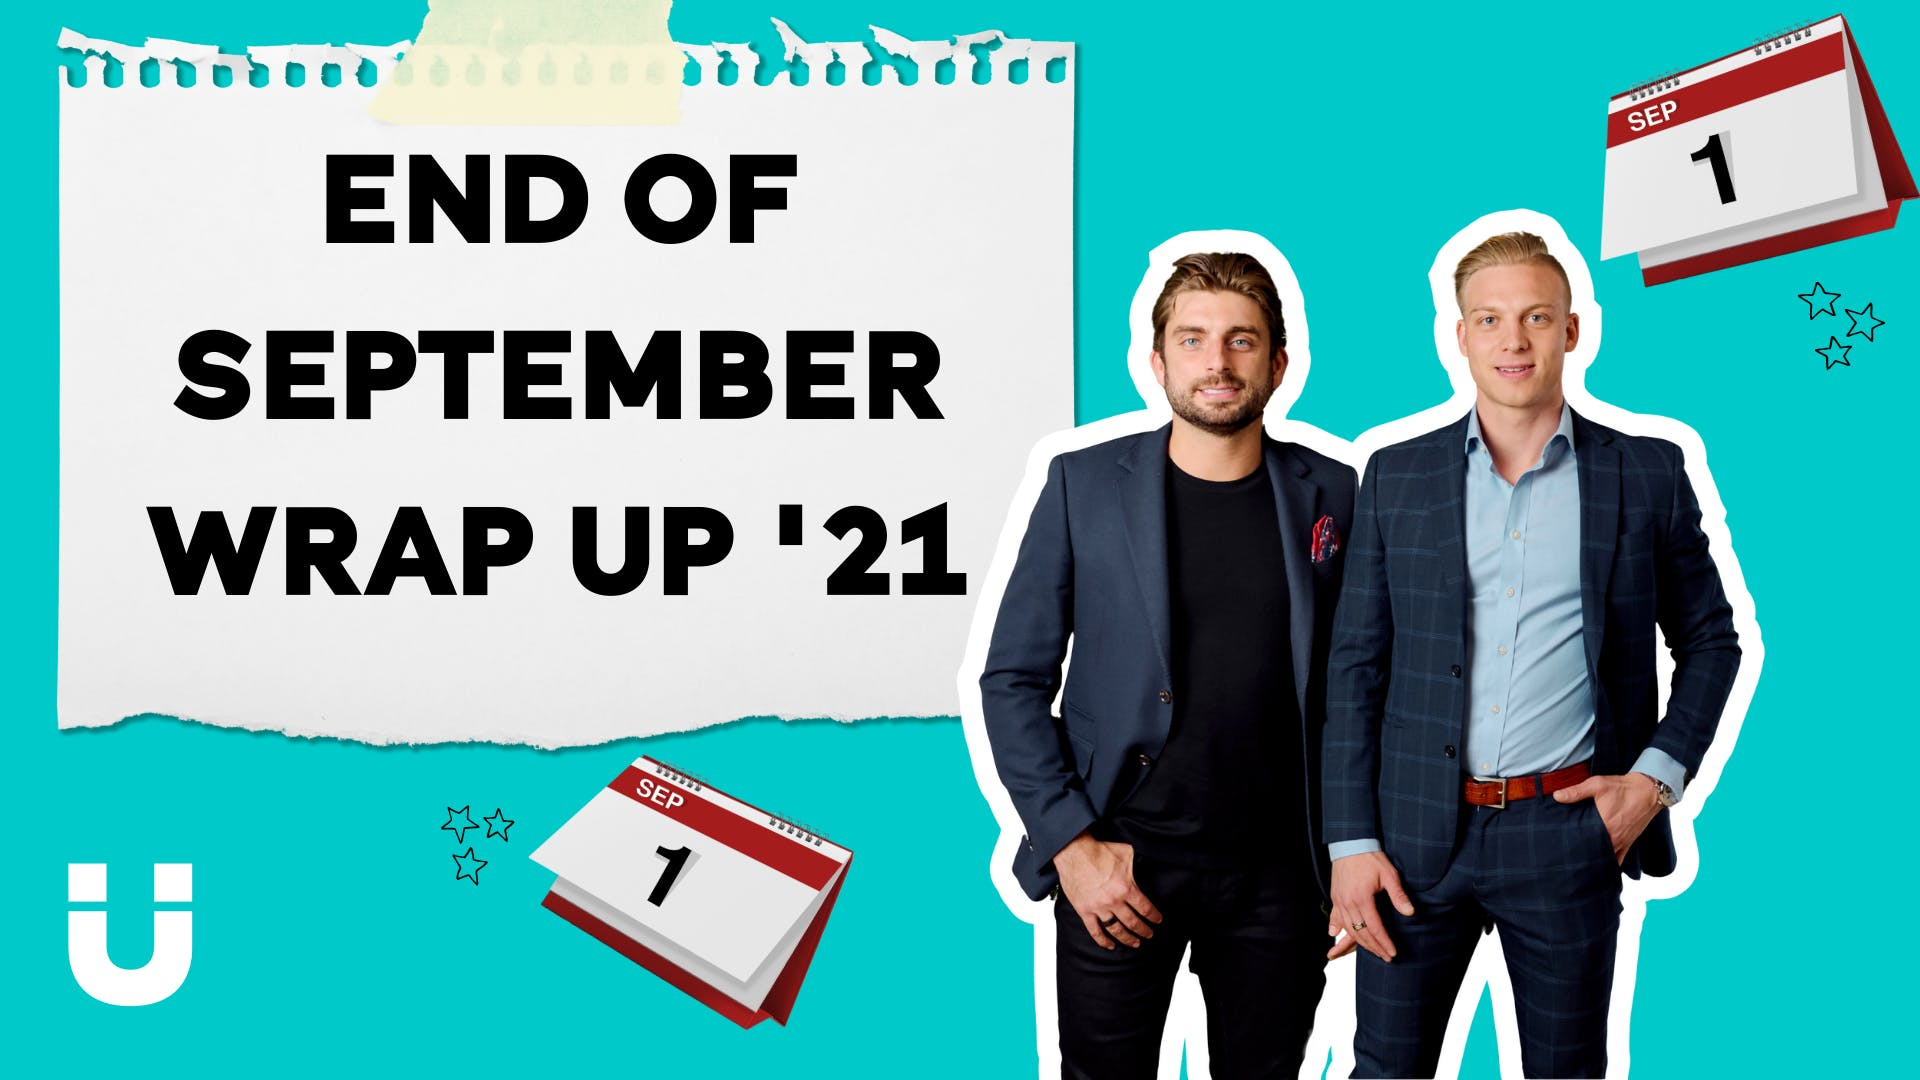 The start of a new month calls for a wrap-up of the month that's been. Sourci Founders Giovanni and Ellie sat down to chat about the month of September and all of the crazy, challenging and exciting things that have gone down!